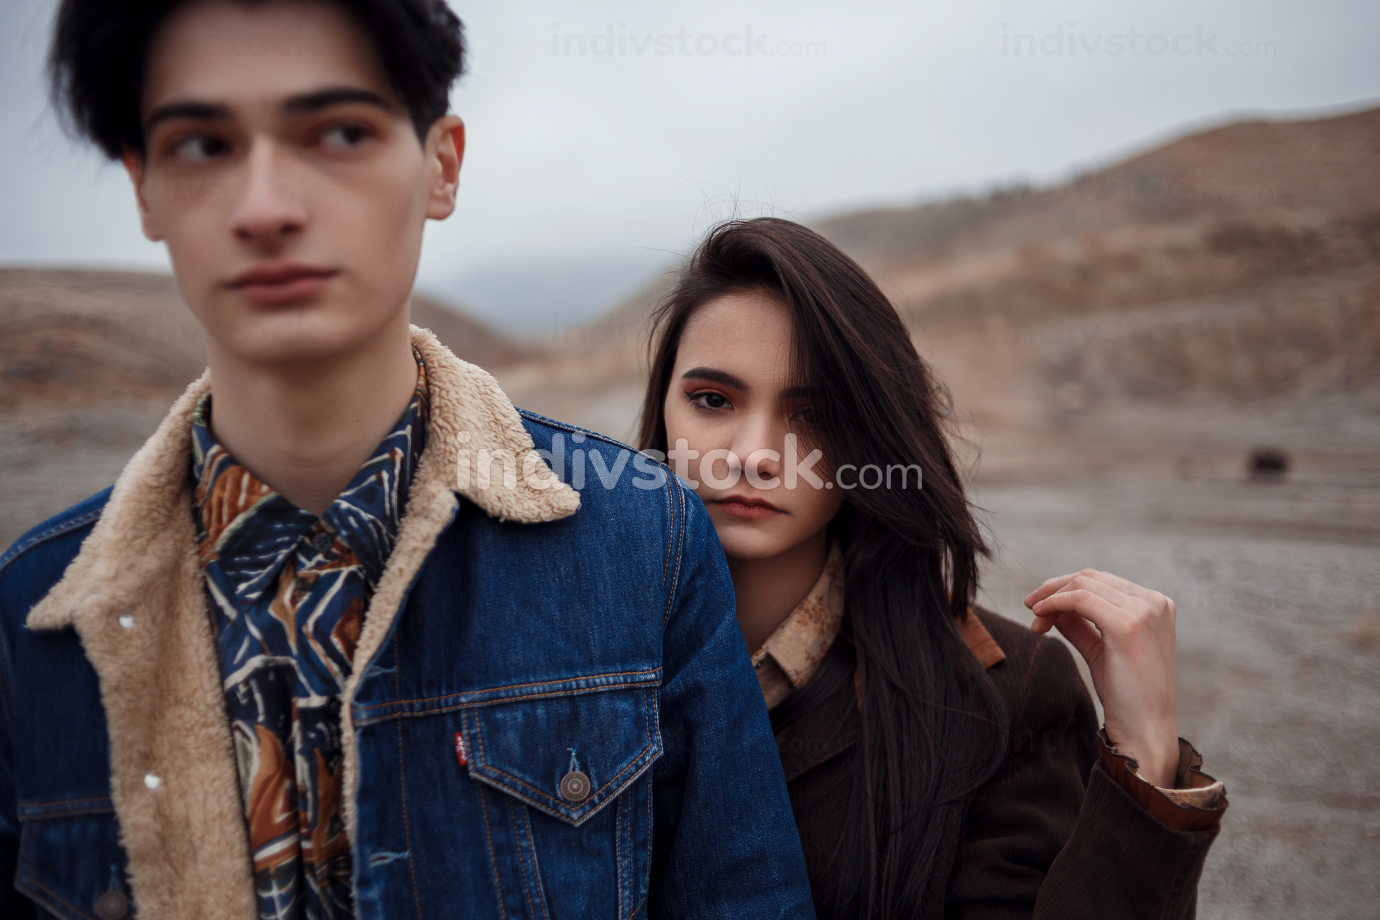 Dramatic portrait of a young brunette girl and a guy in cloudy weather. she